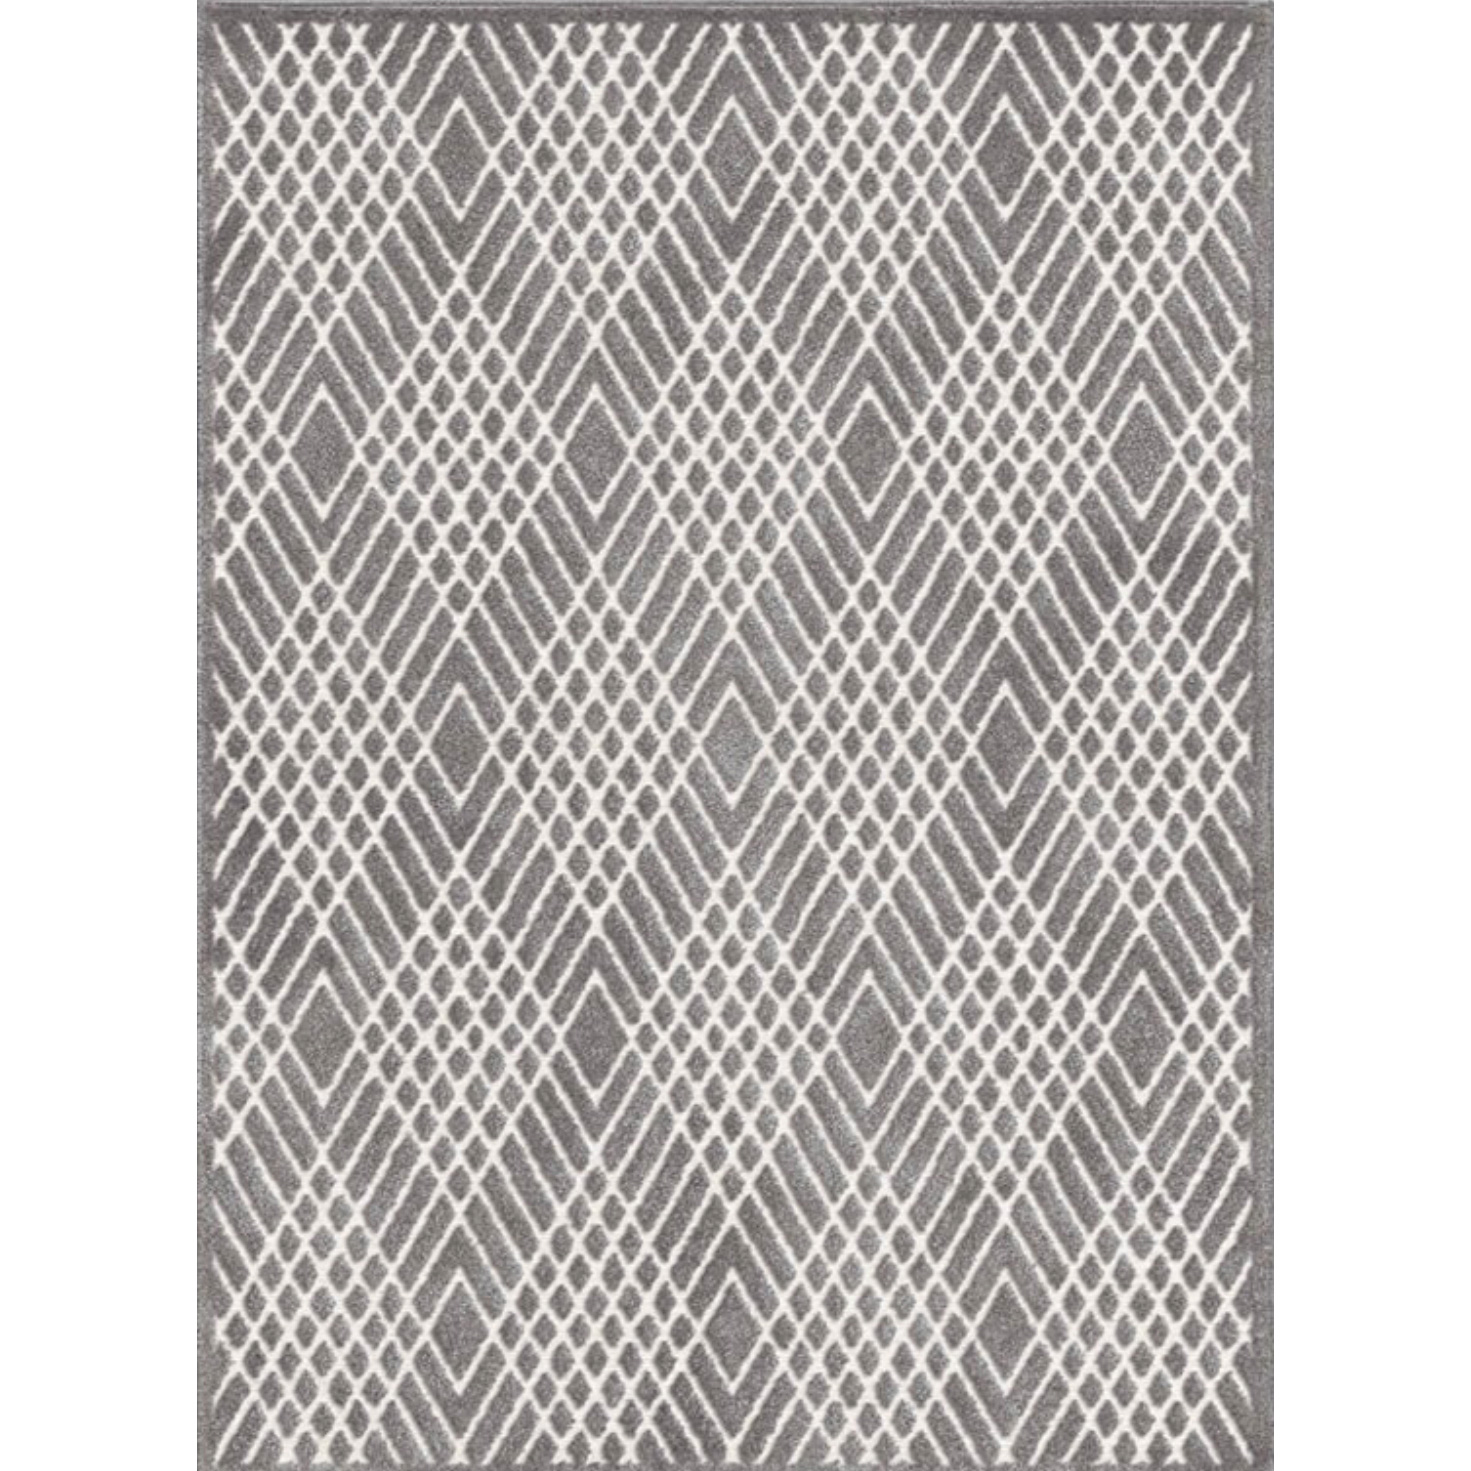 Palmetto Living By Orian | Ravinia Silverstone Natural Gray 8x11 Area Rug